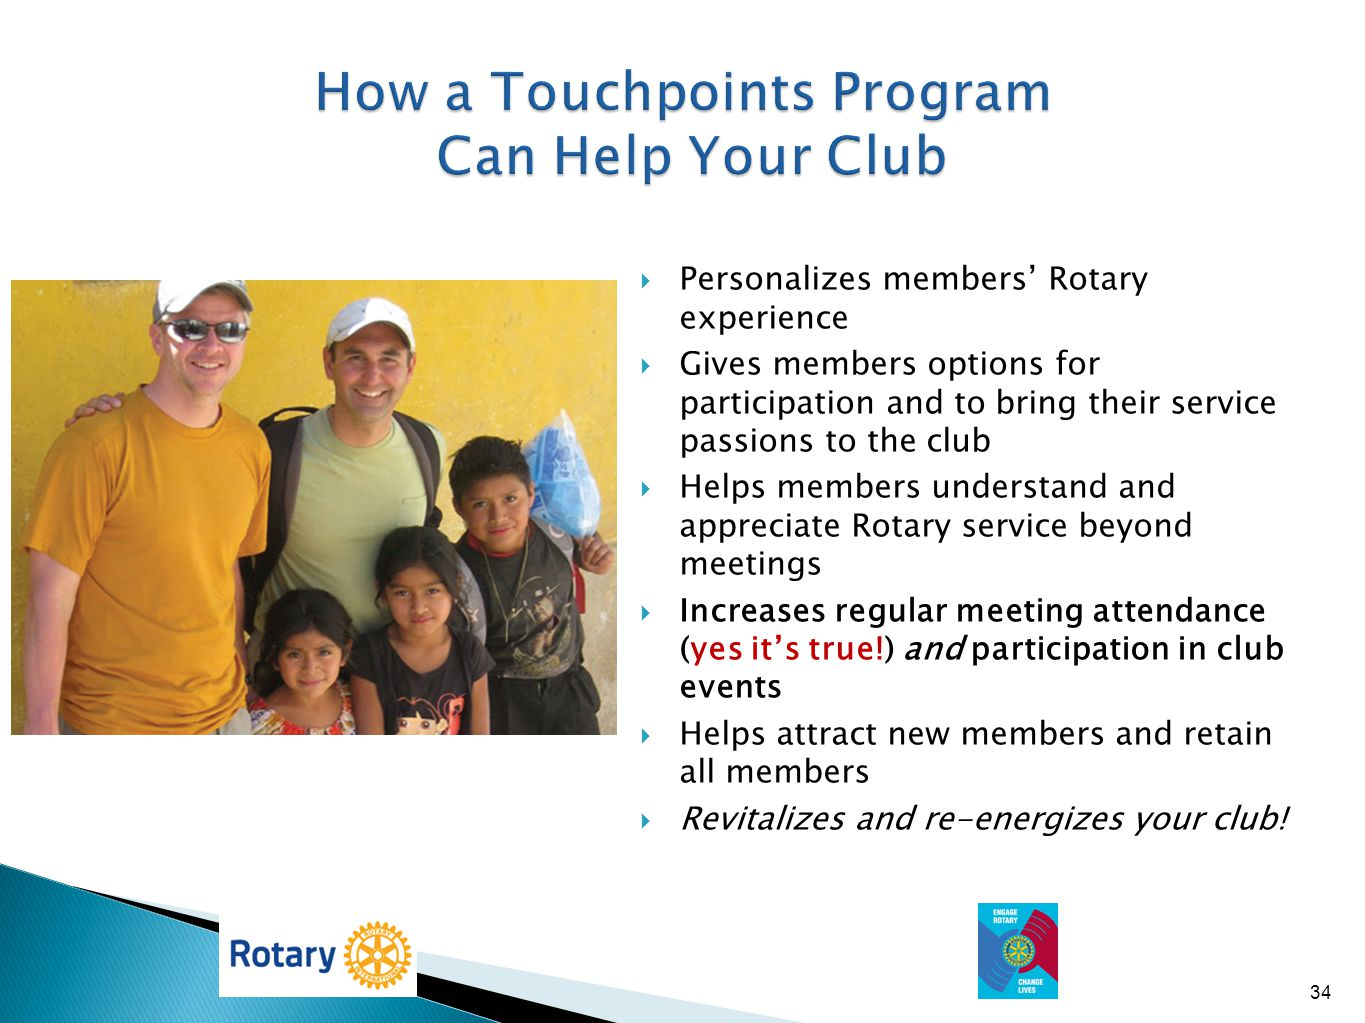 How a Touchpoints Program Can Help Your Club